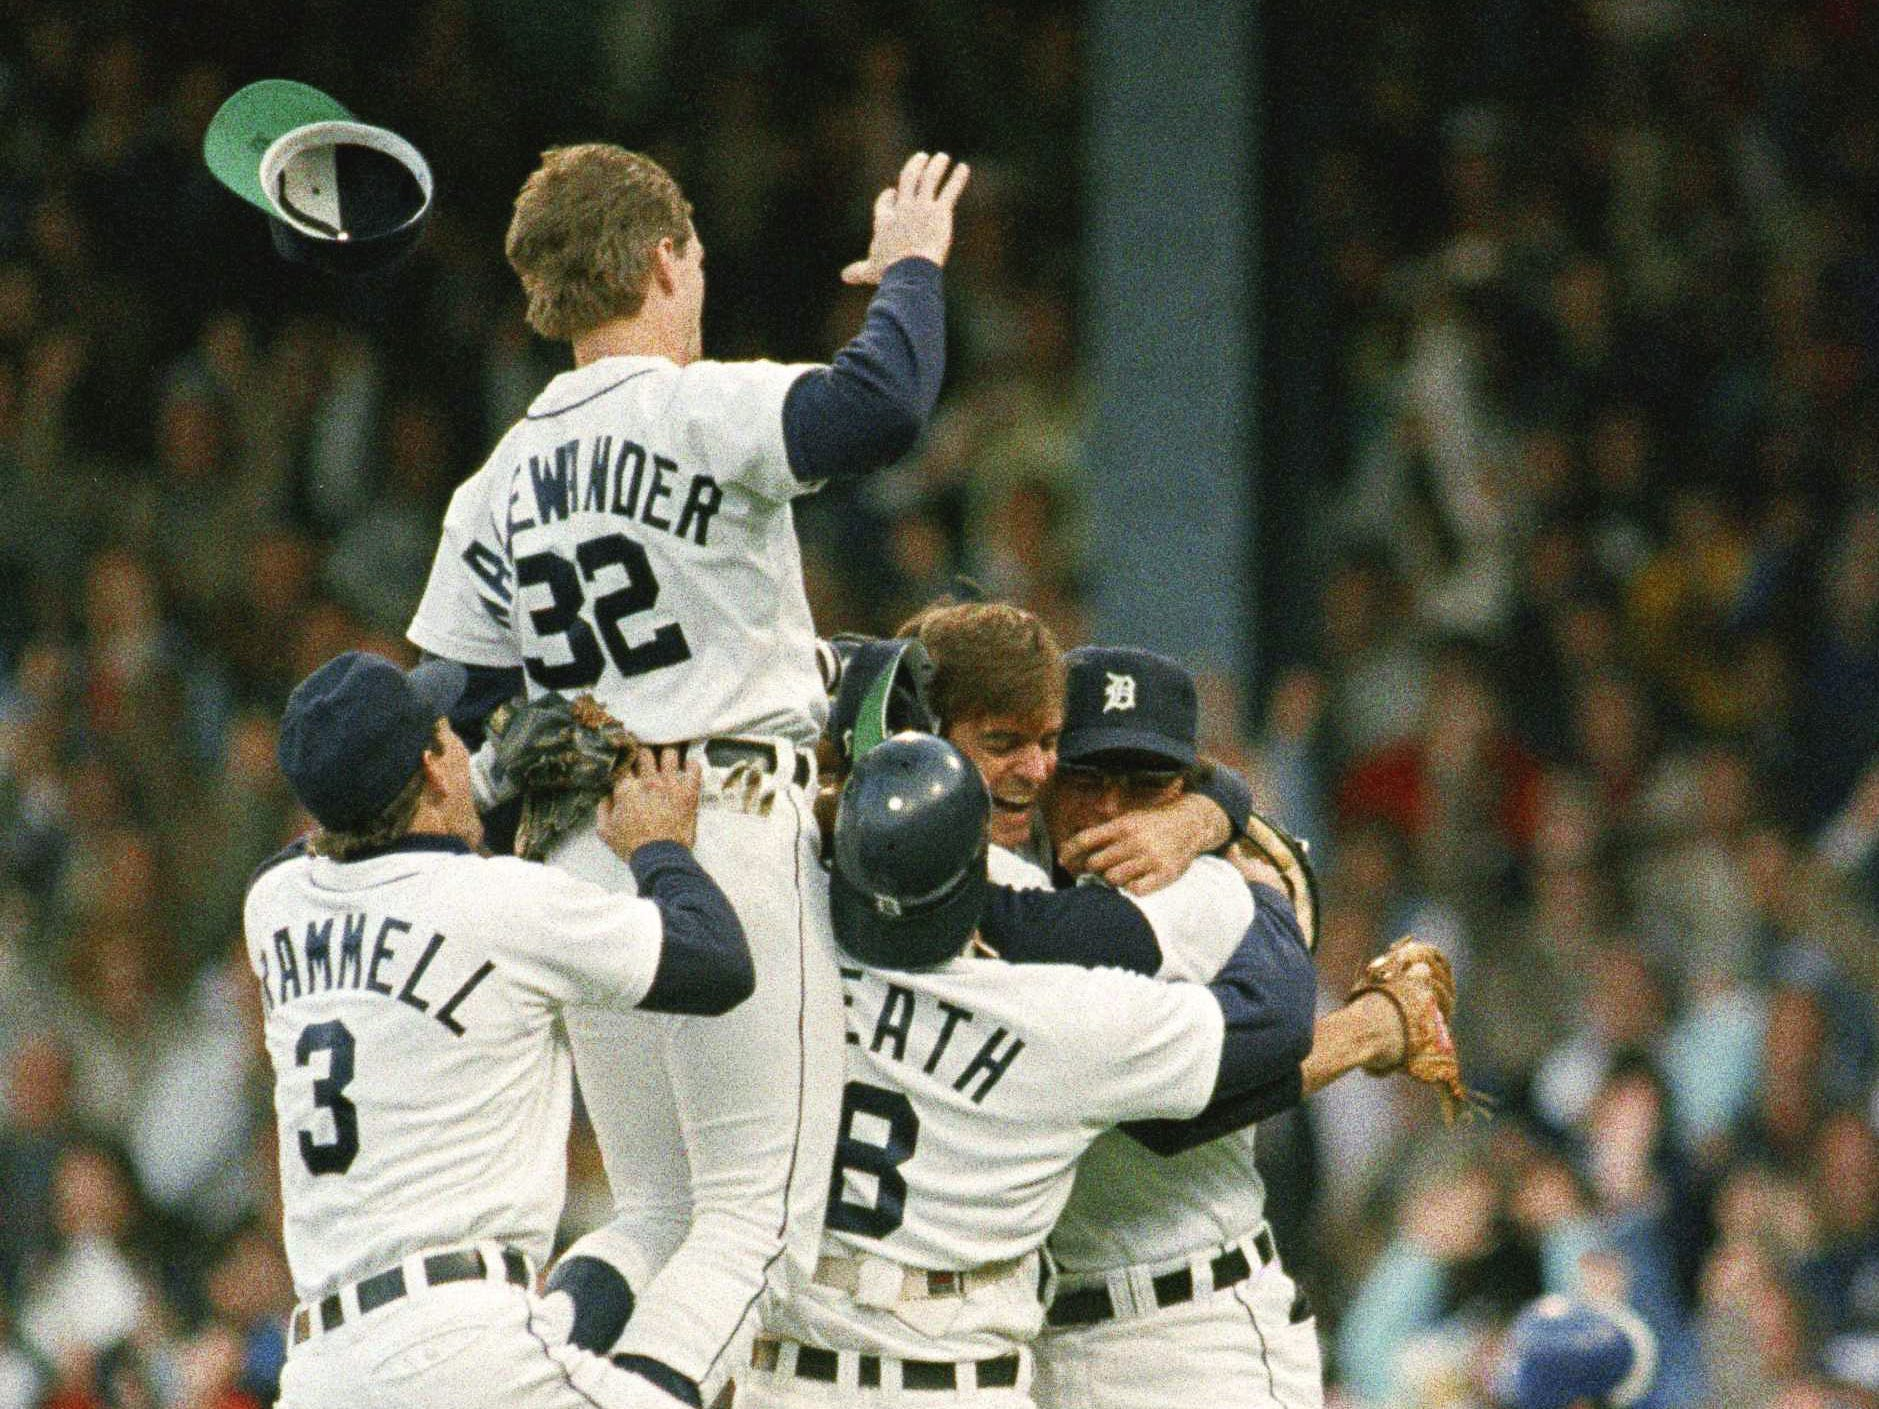 TIGERS-BLUE JAYS: These clubs haven't been rivals recently, but back in the 1980s, they were at each other's throats. It never was better than in 1987, when the Tigers caught the Blue Jays and passed them to win the AL East on the final day of the regular season.